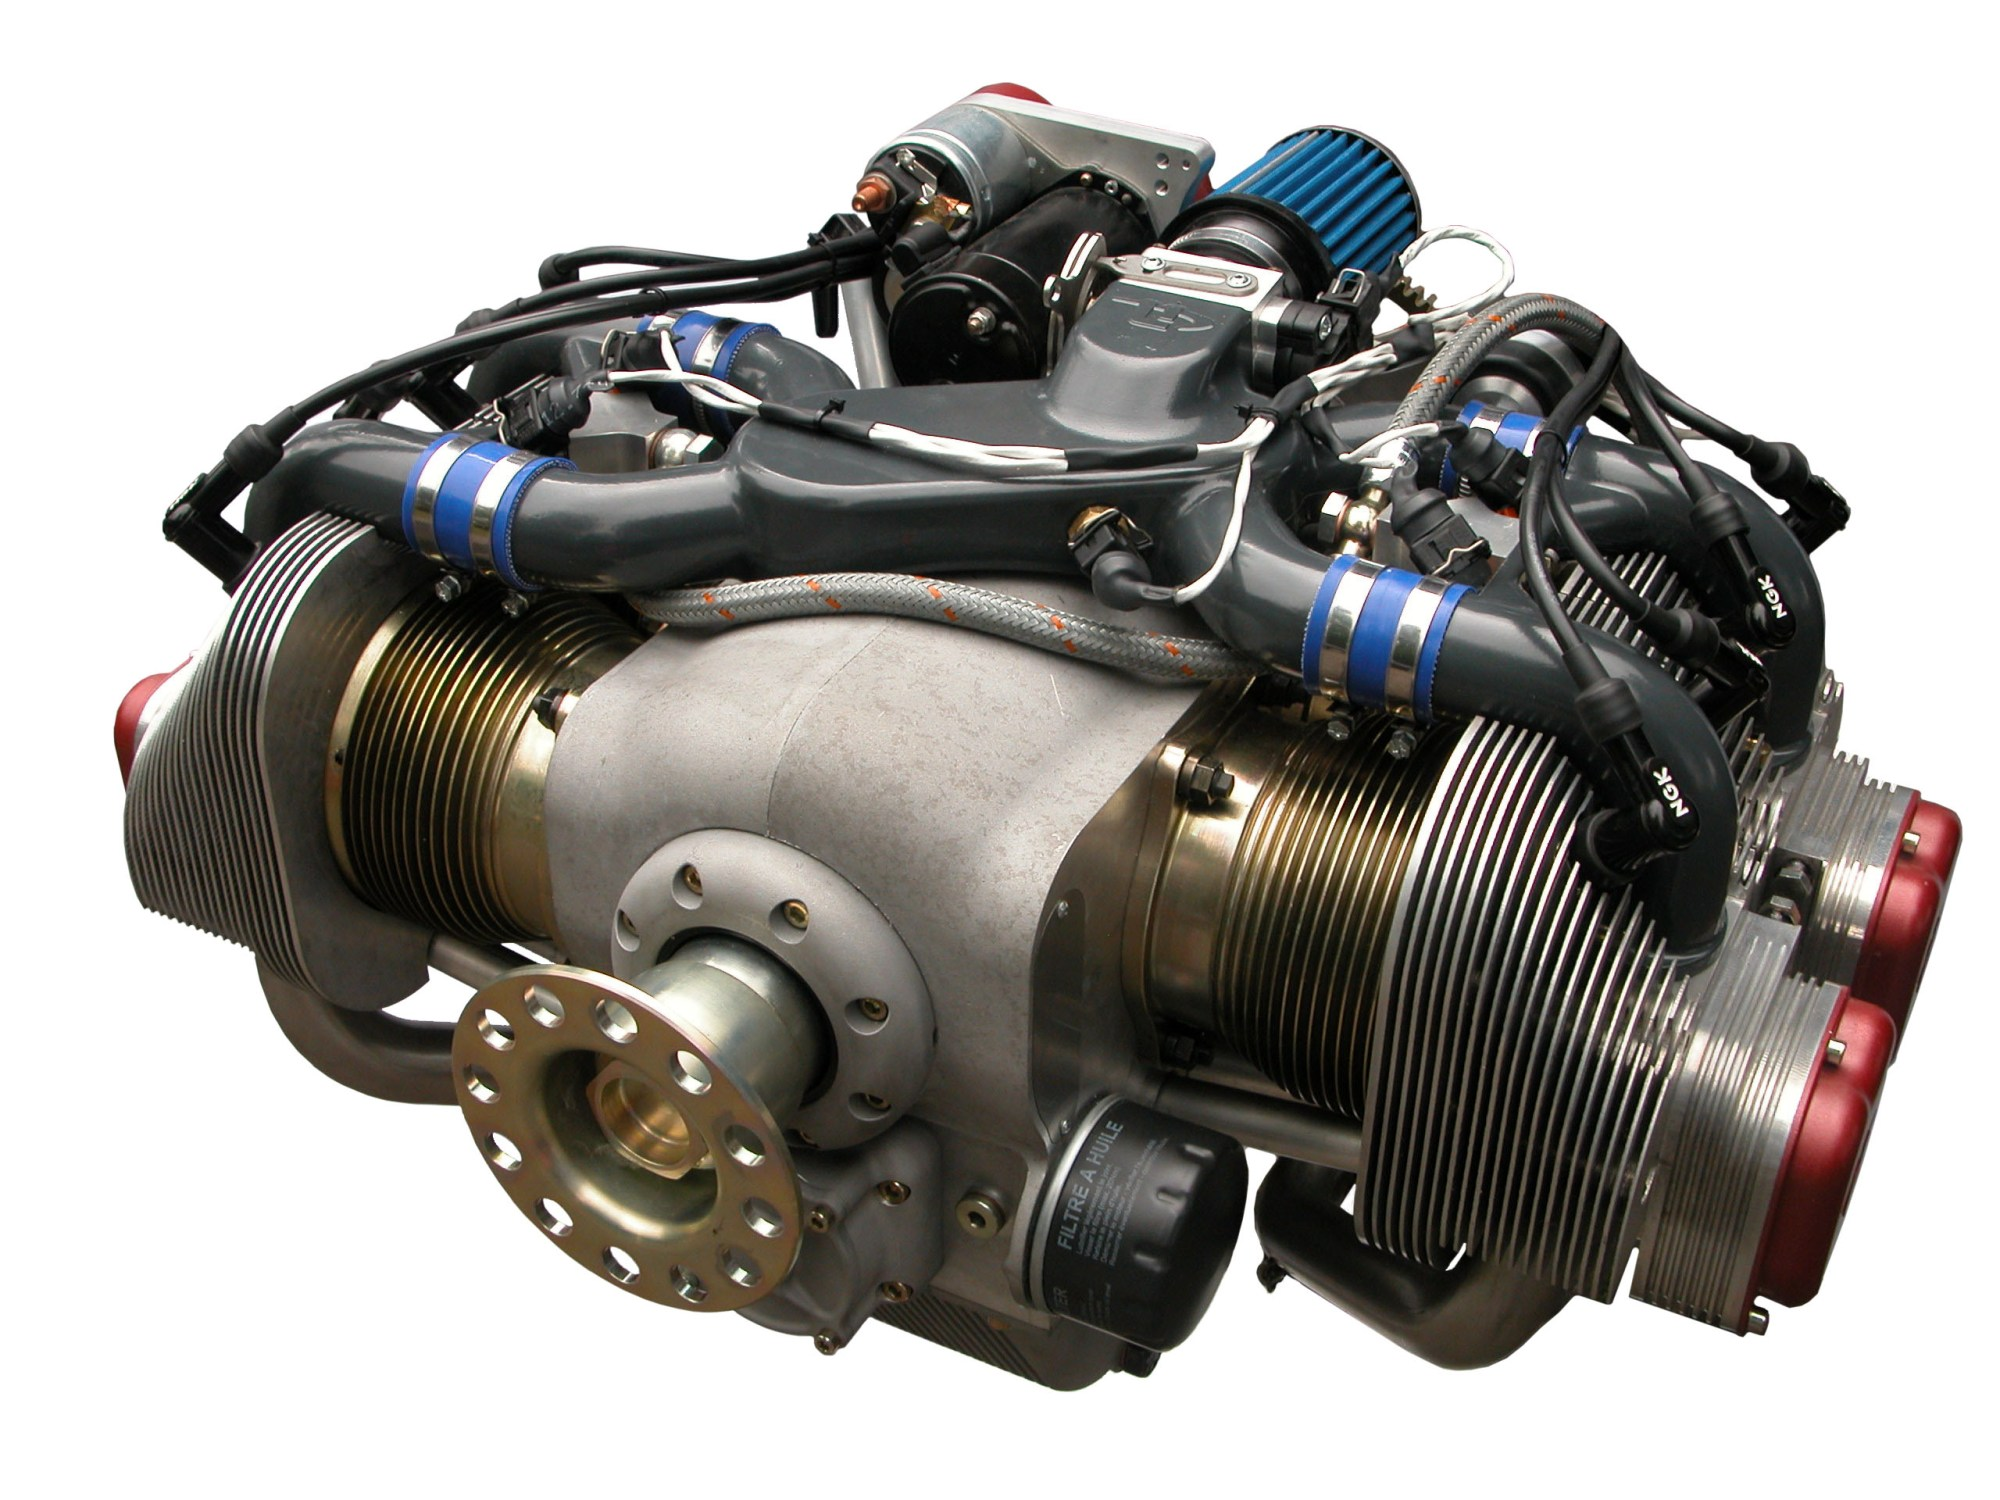 hight resolution of ul260i flat 4 aircraft engine